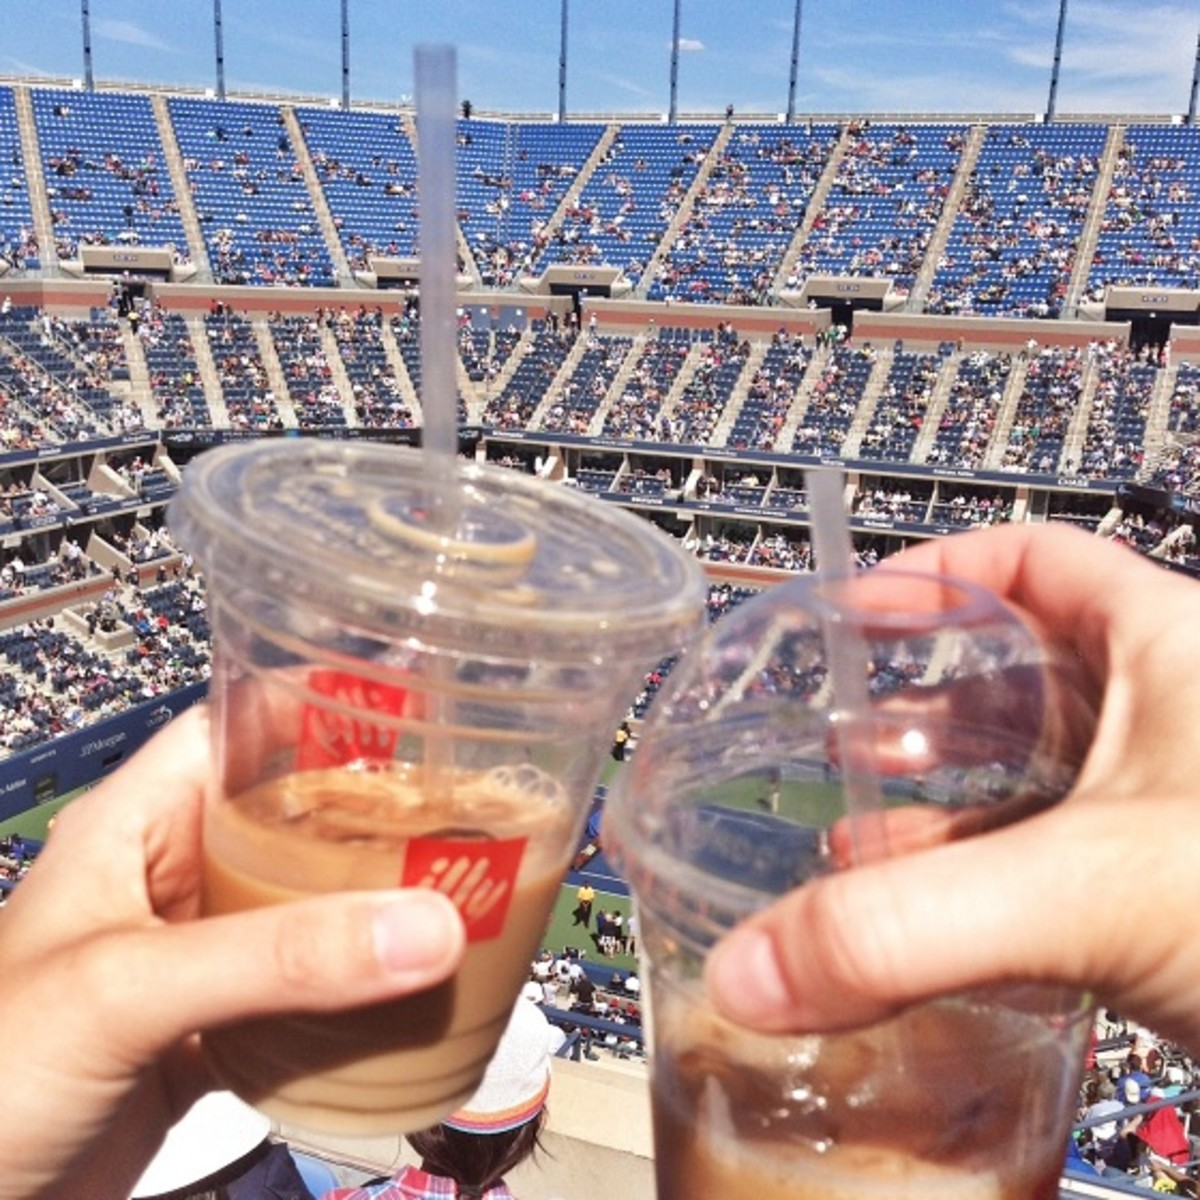 Drinks at the US Open